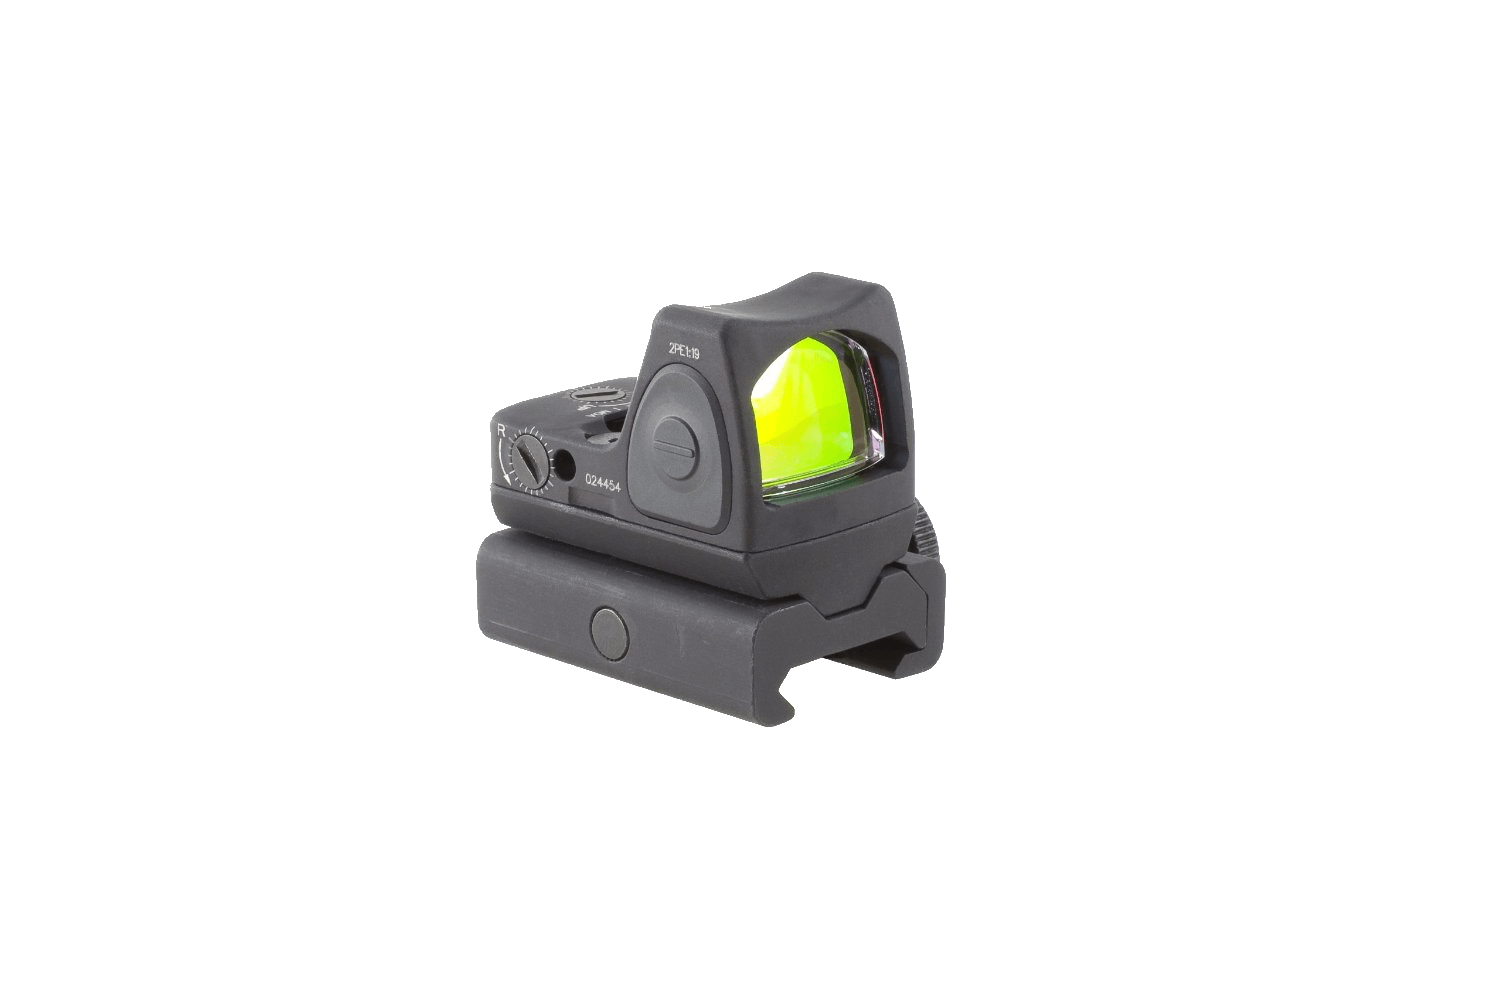 P90 Optic Trijicon RMR Adjustable LED Red dot w/ PS90 Picatinny Mount